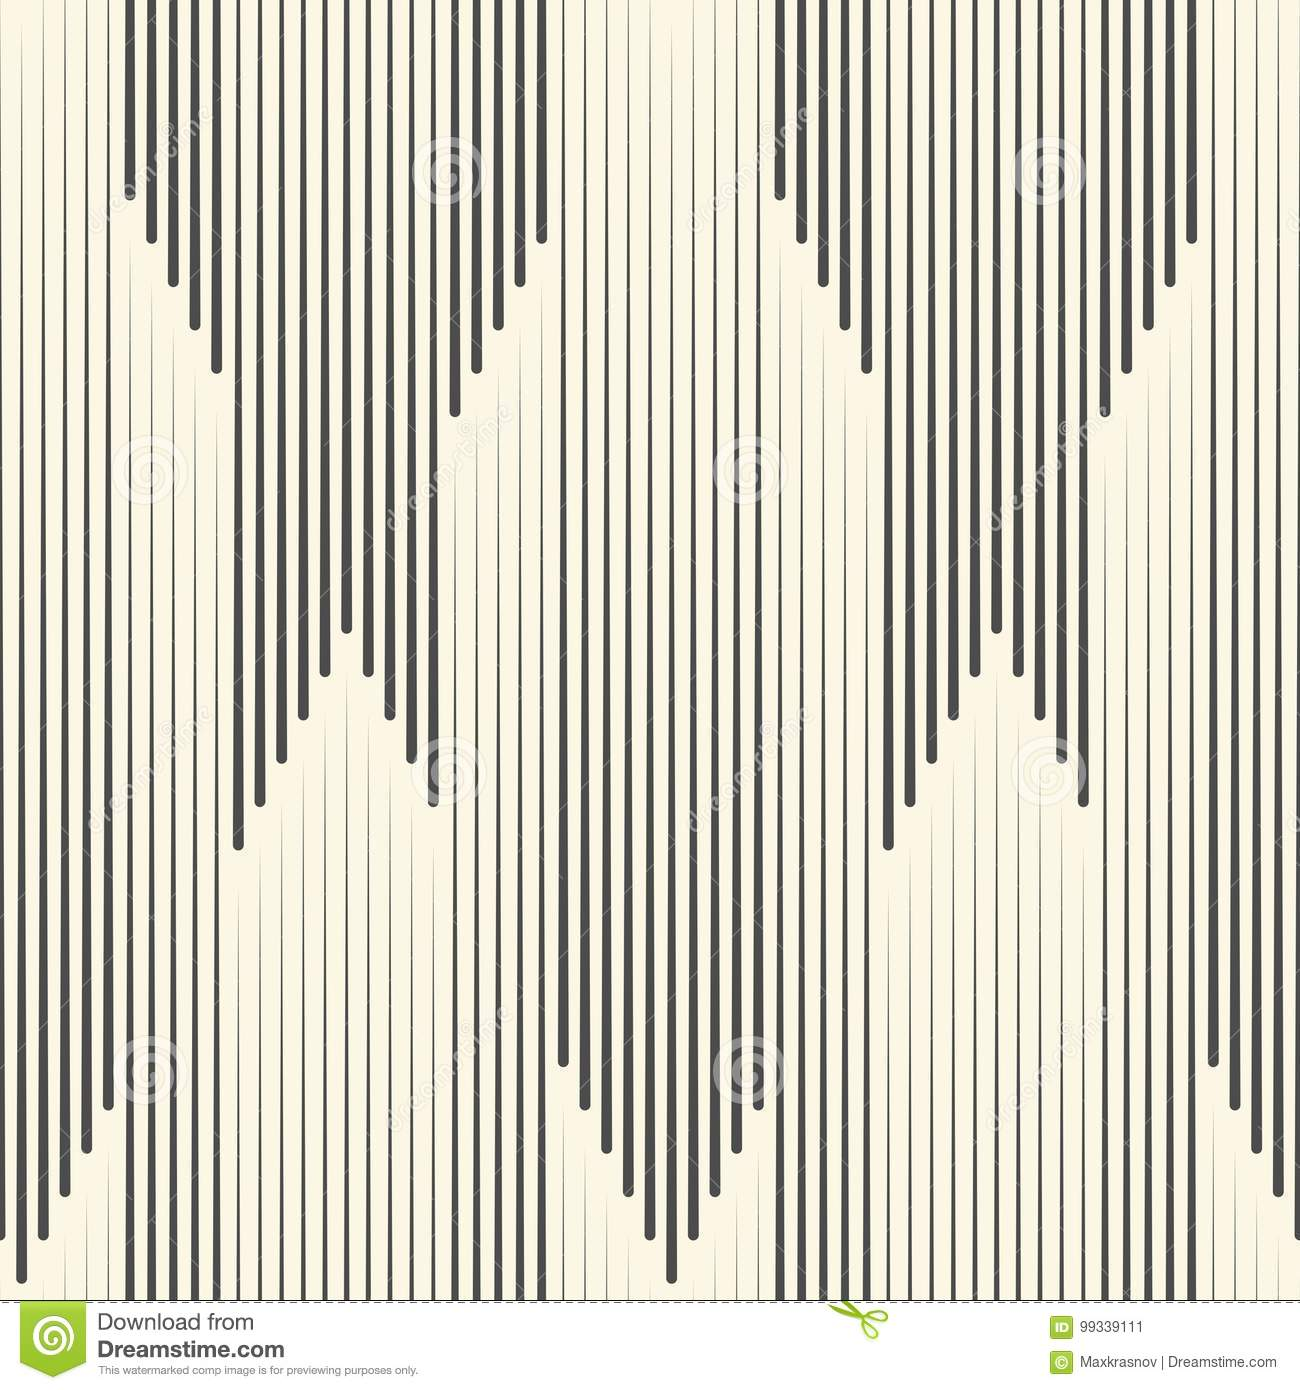 Seamless Vertical Stripe Pattern. Vector Black and White Line Ba